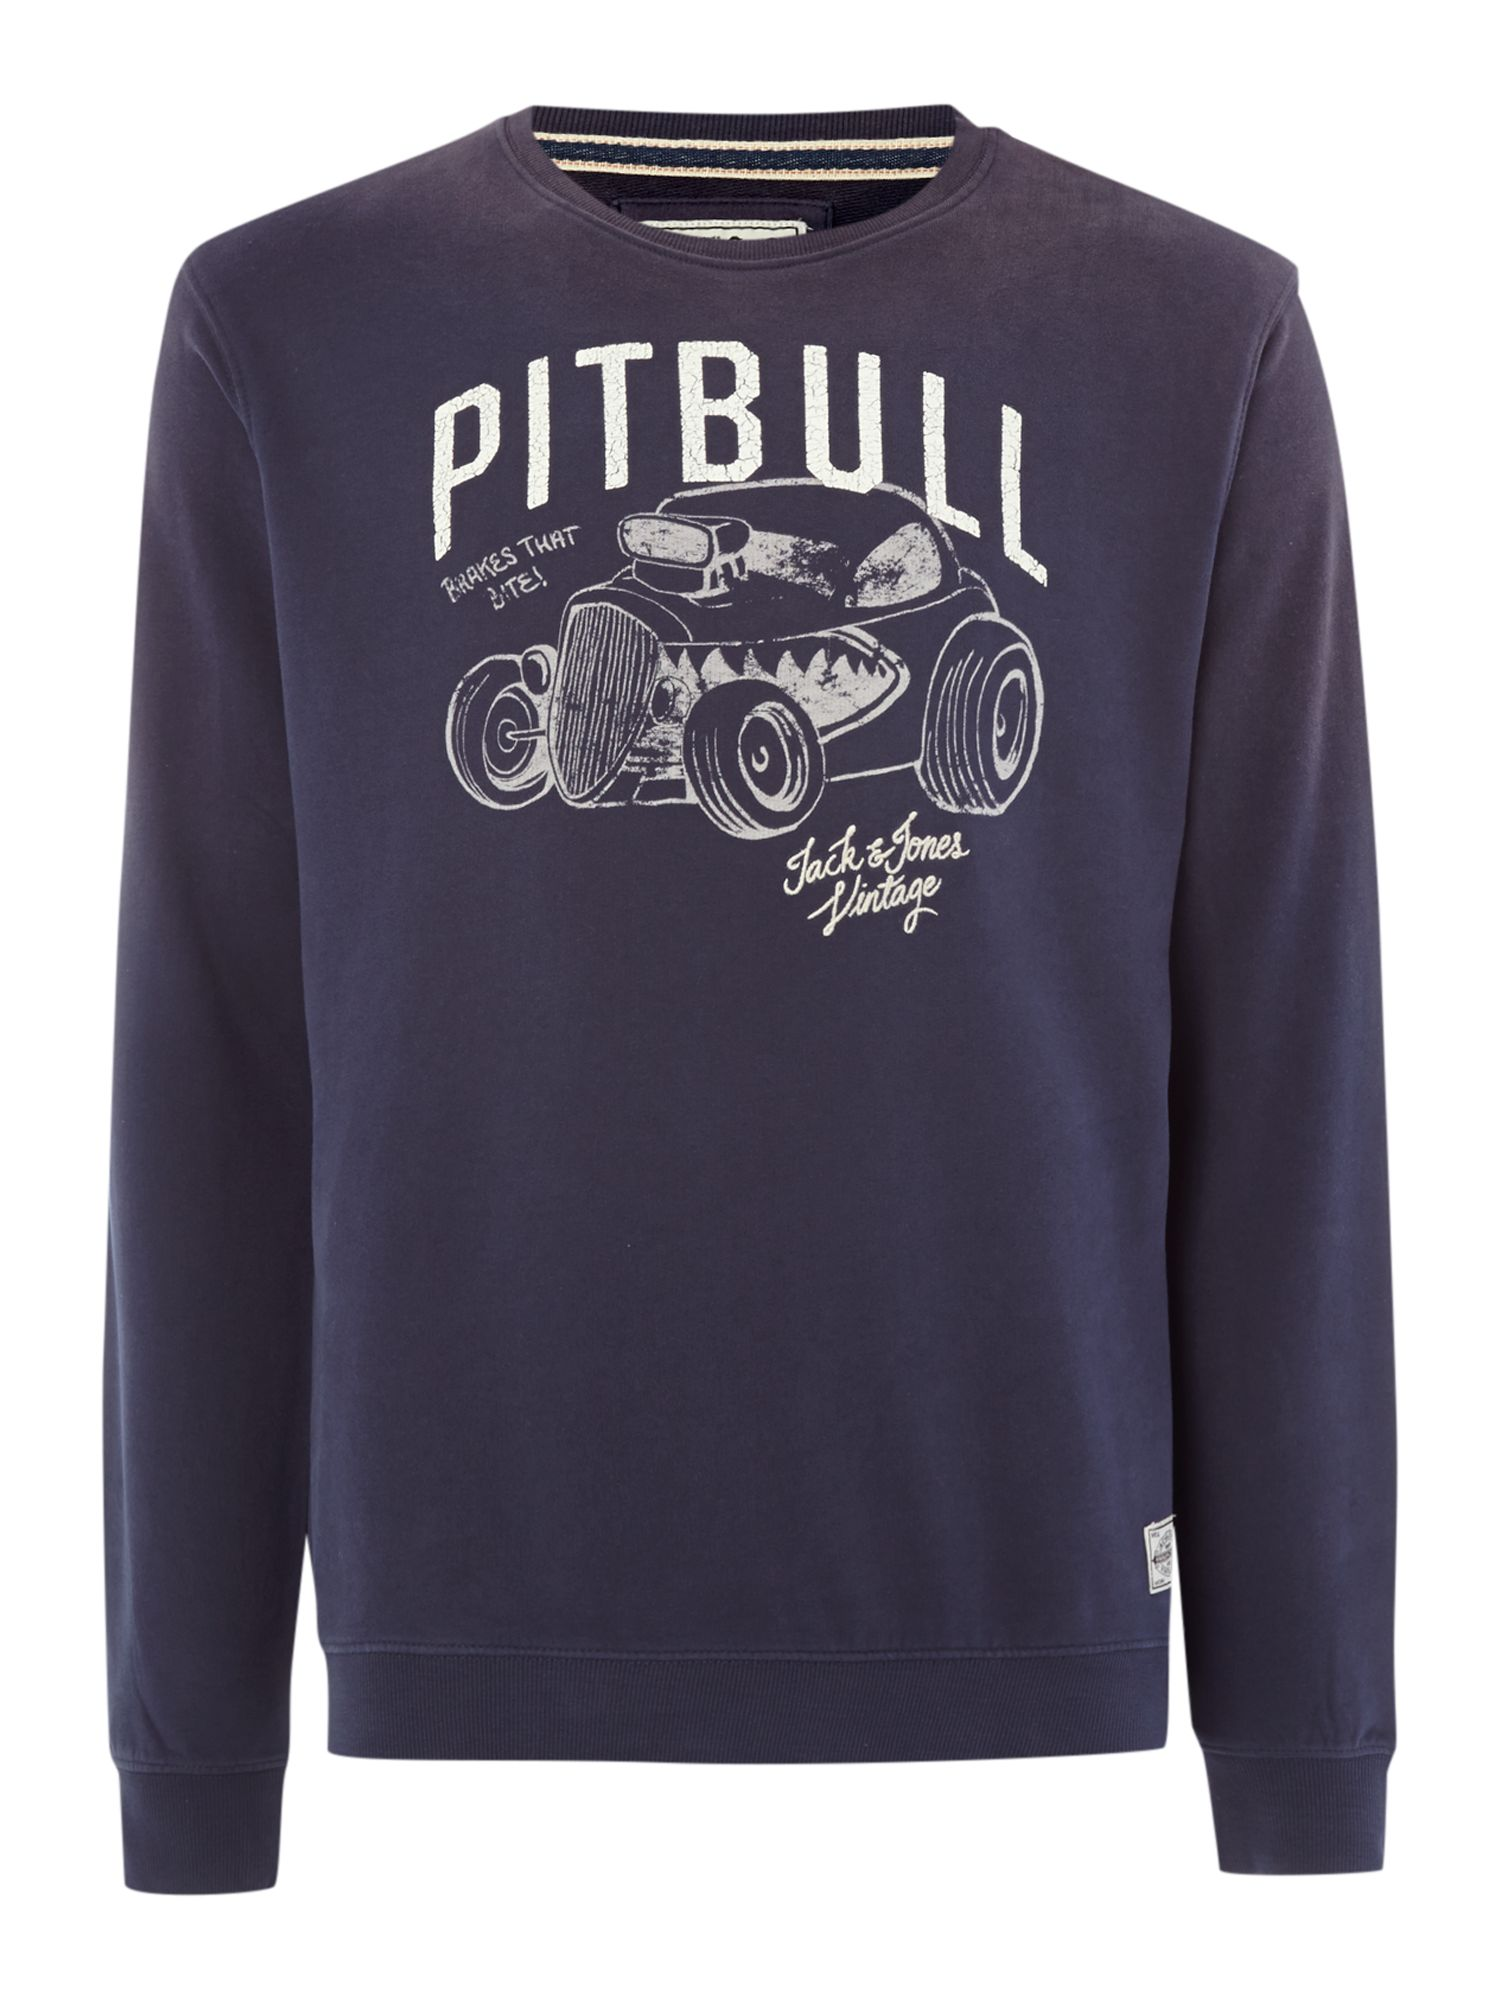 Pitbull print crew neck sweat